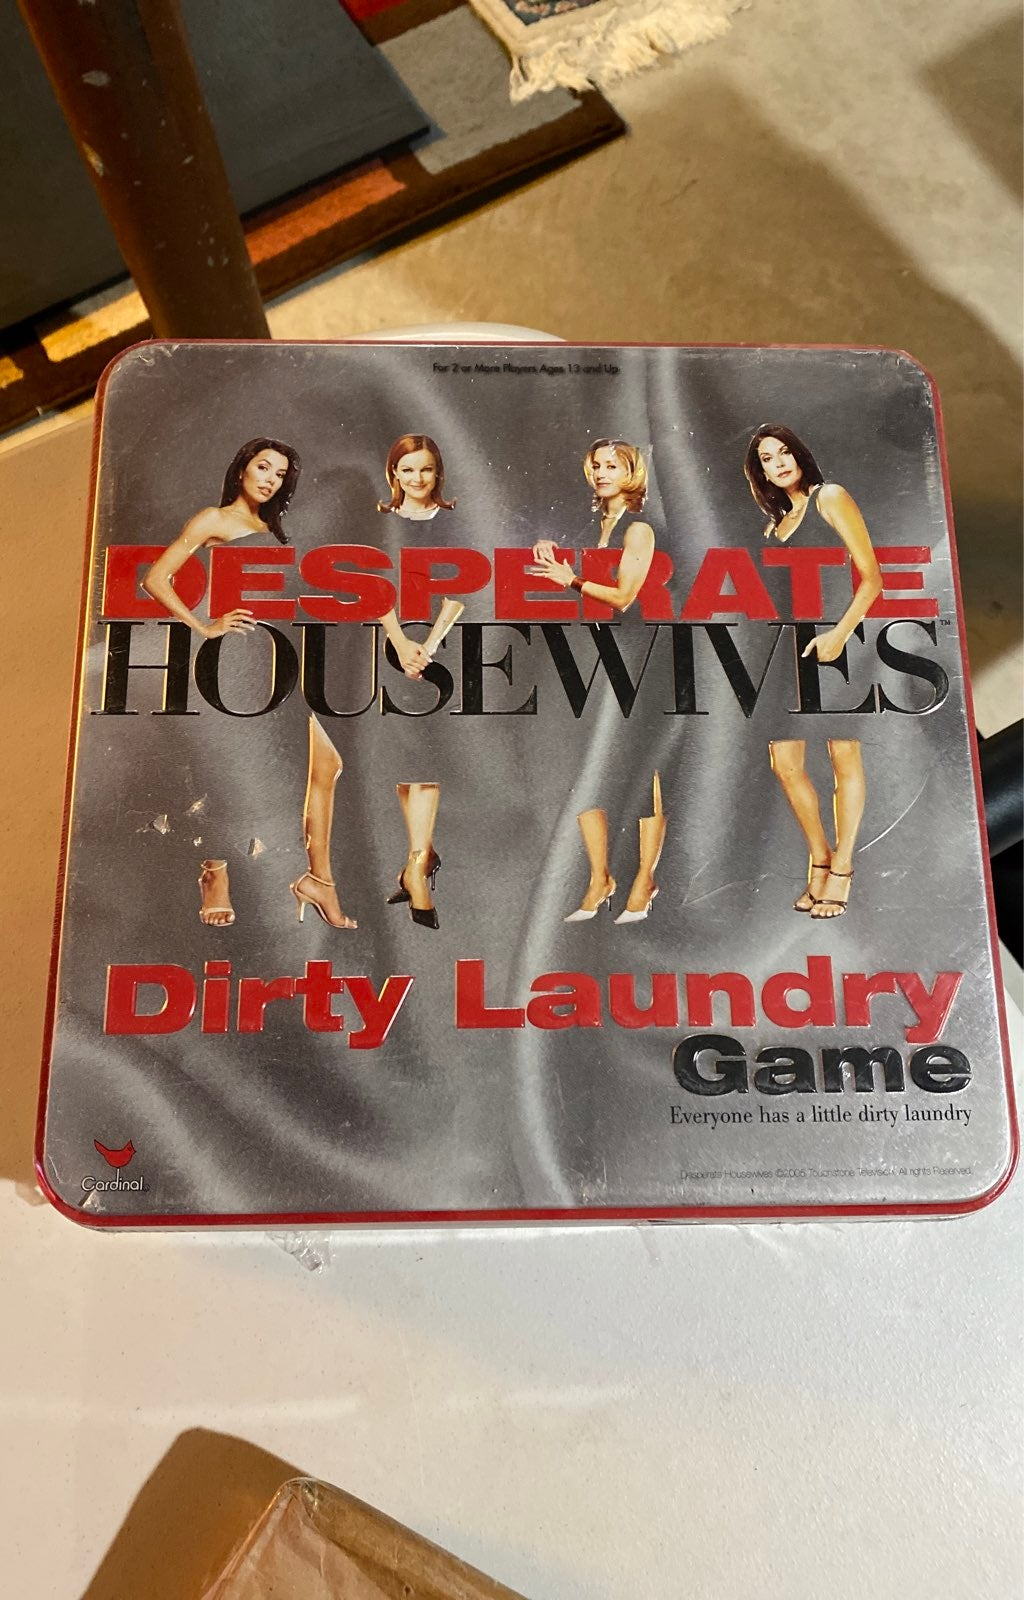 Desparate Housewives Dirty Laundry Game